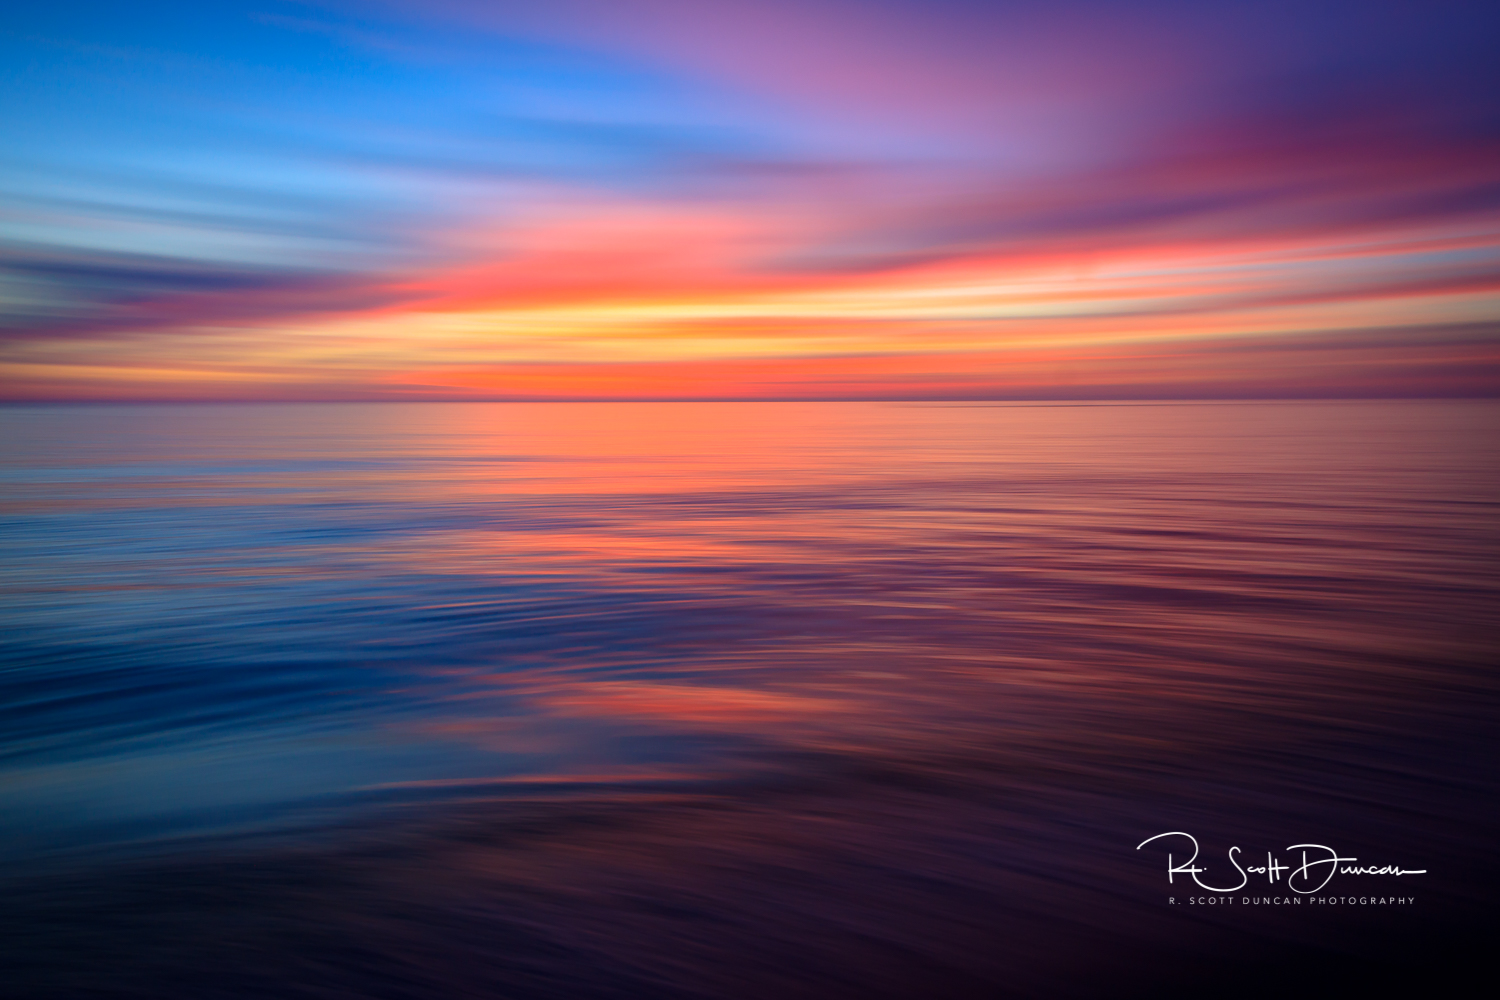 gulf-coast-sunset-ocean-abstract-florida.jpg